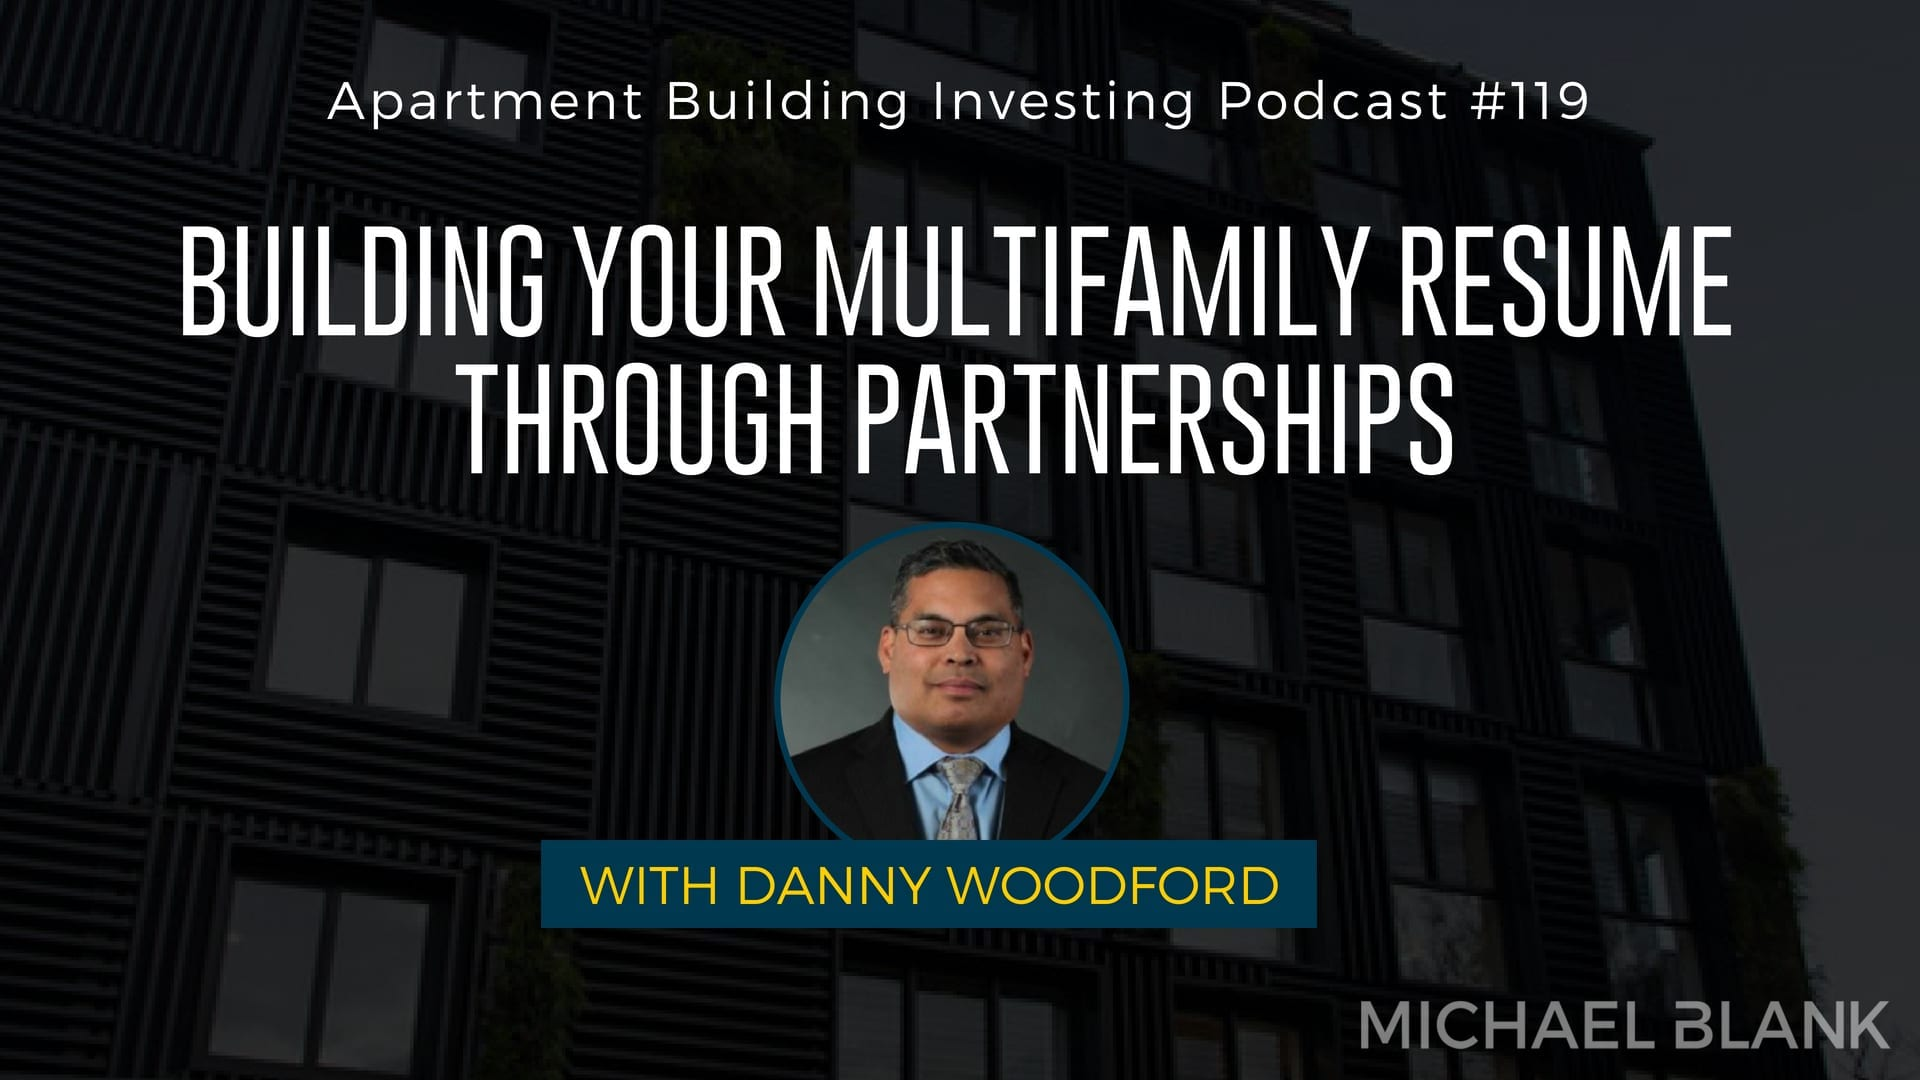 MB 119: Building Your Multifamily Resume Through Partnerships – With Danny Woodford